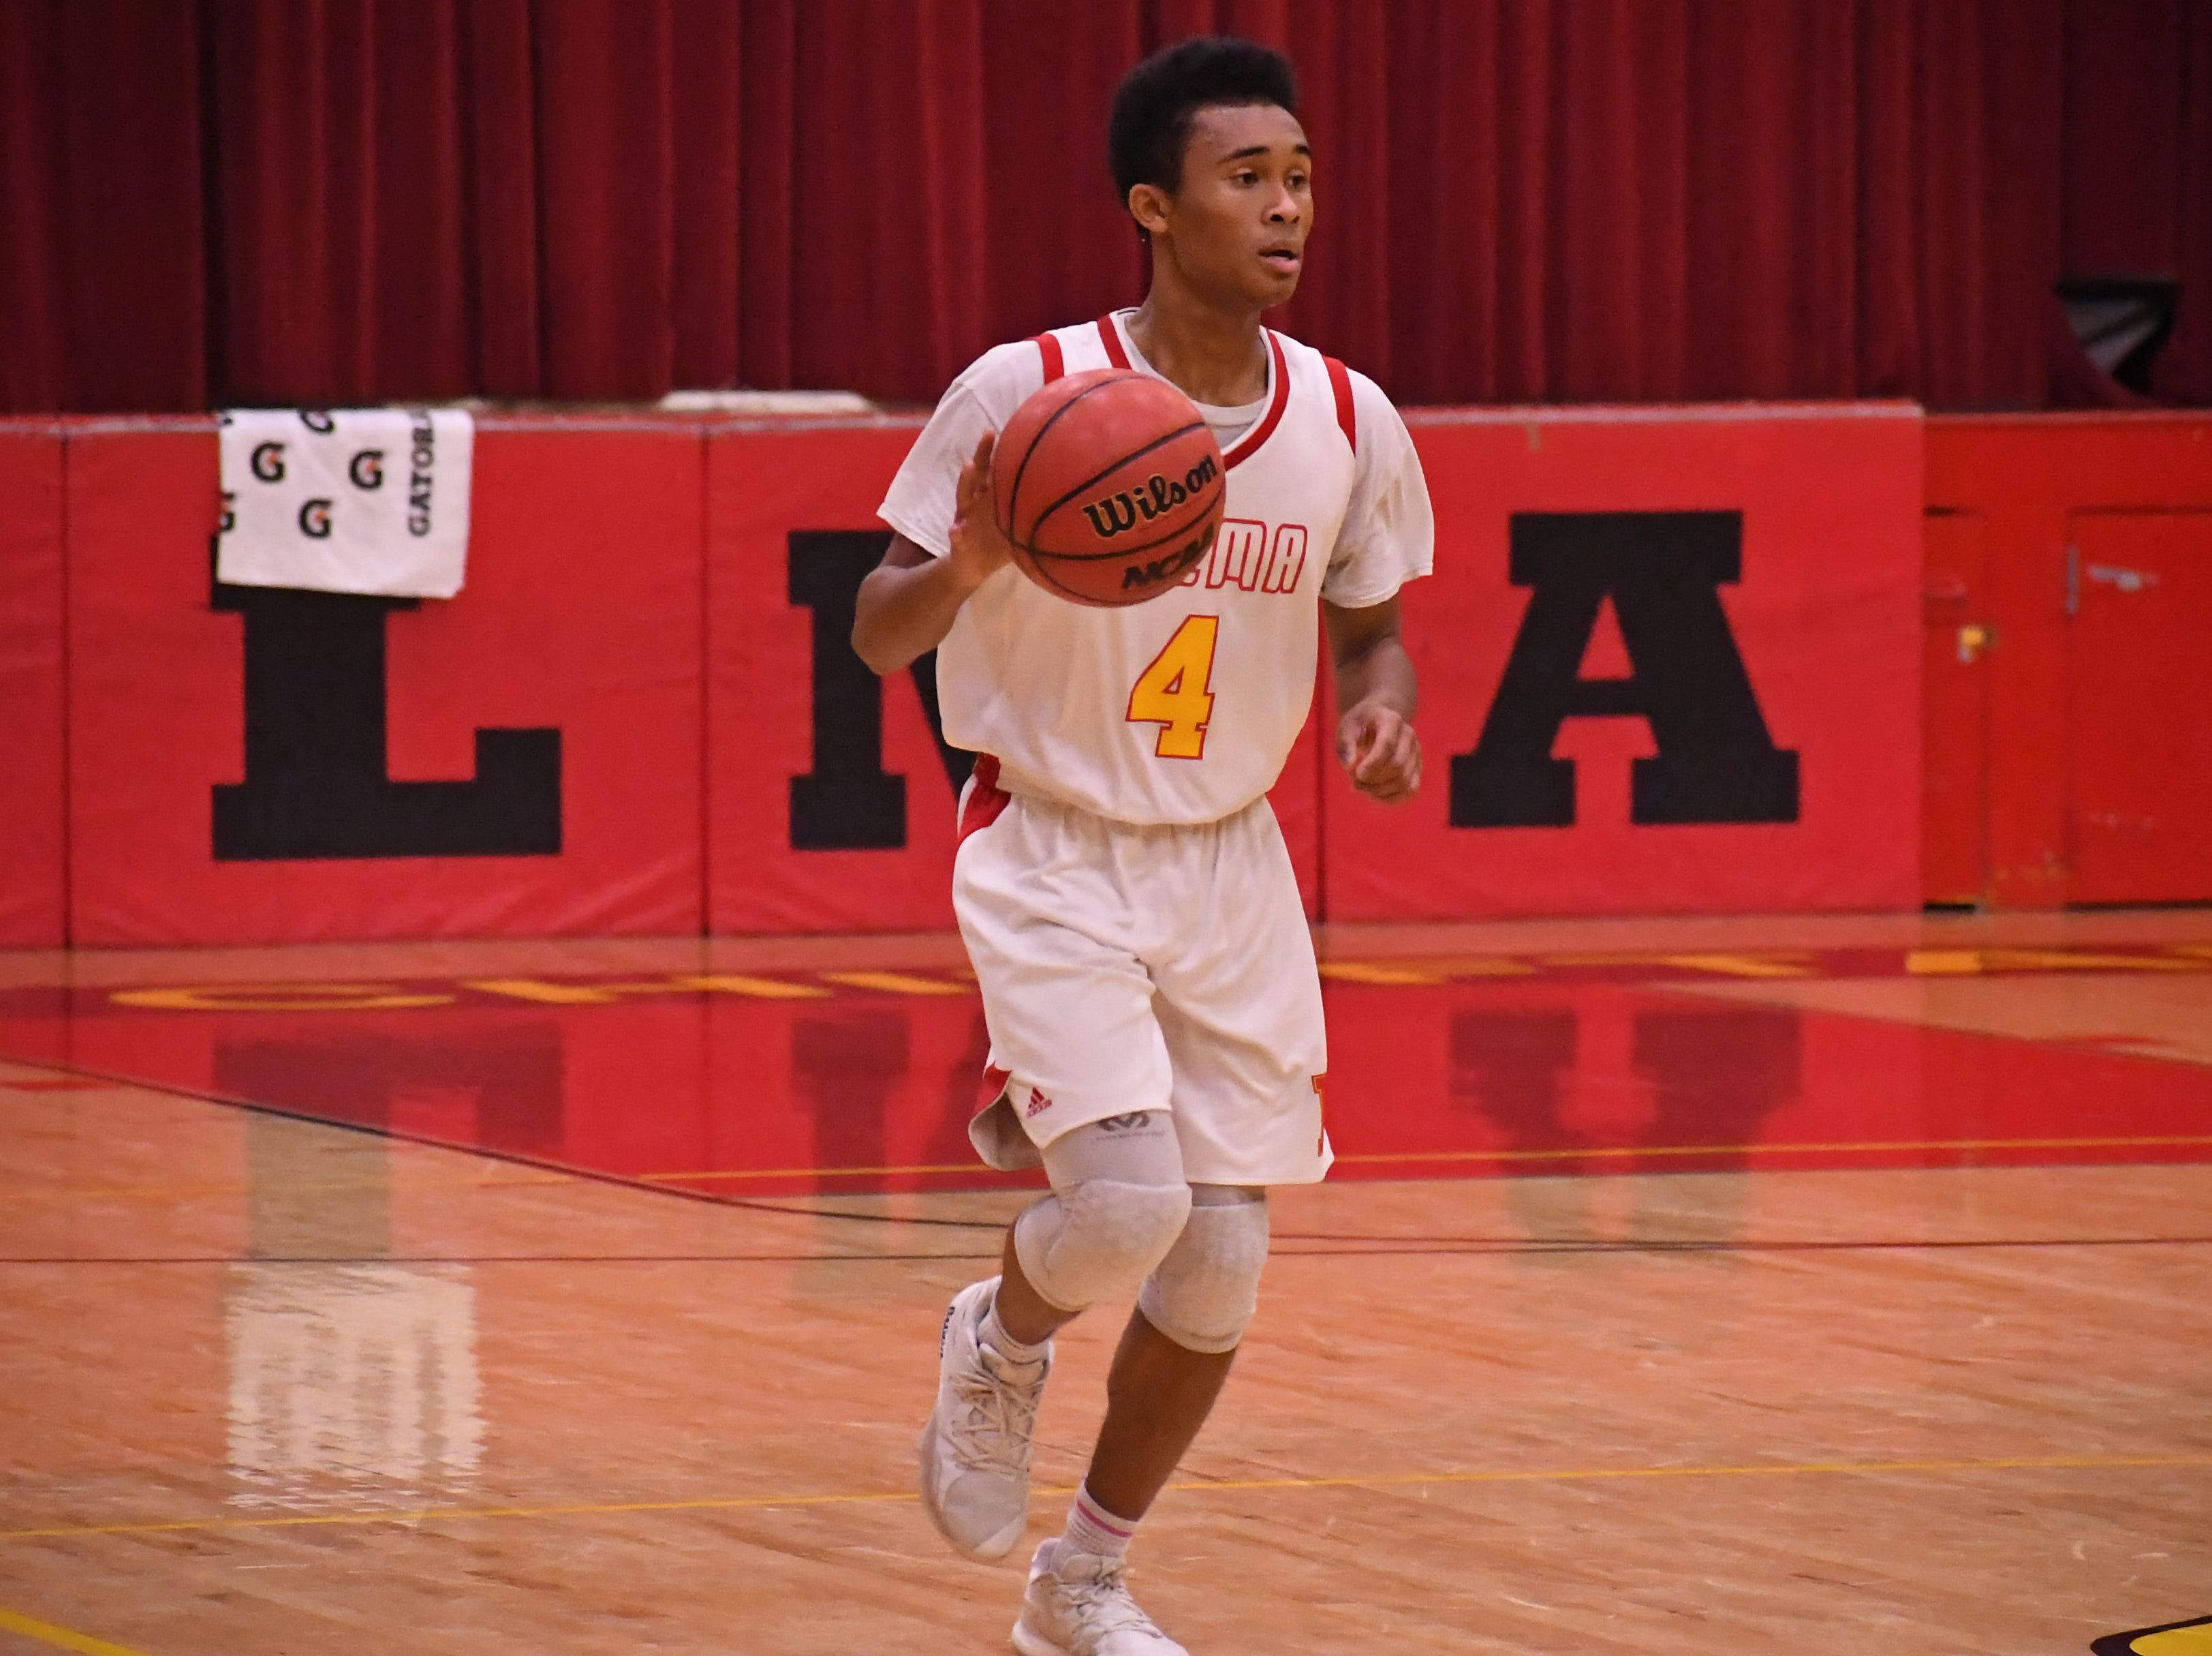 Palma guard Dante Jean-Pierre (4) takes the ball across half court to initiate the offense.